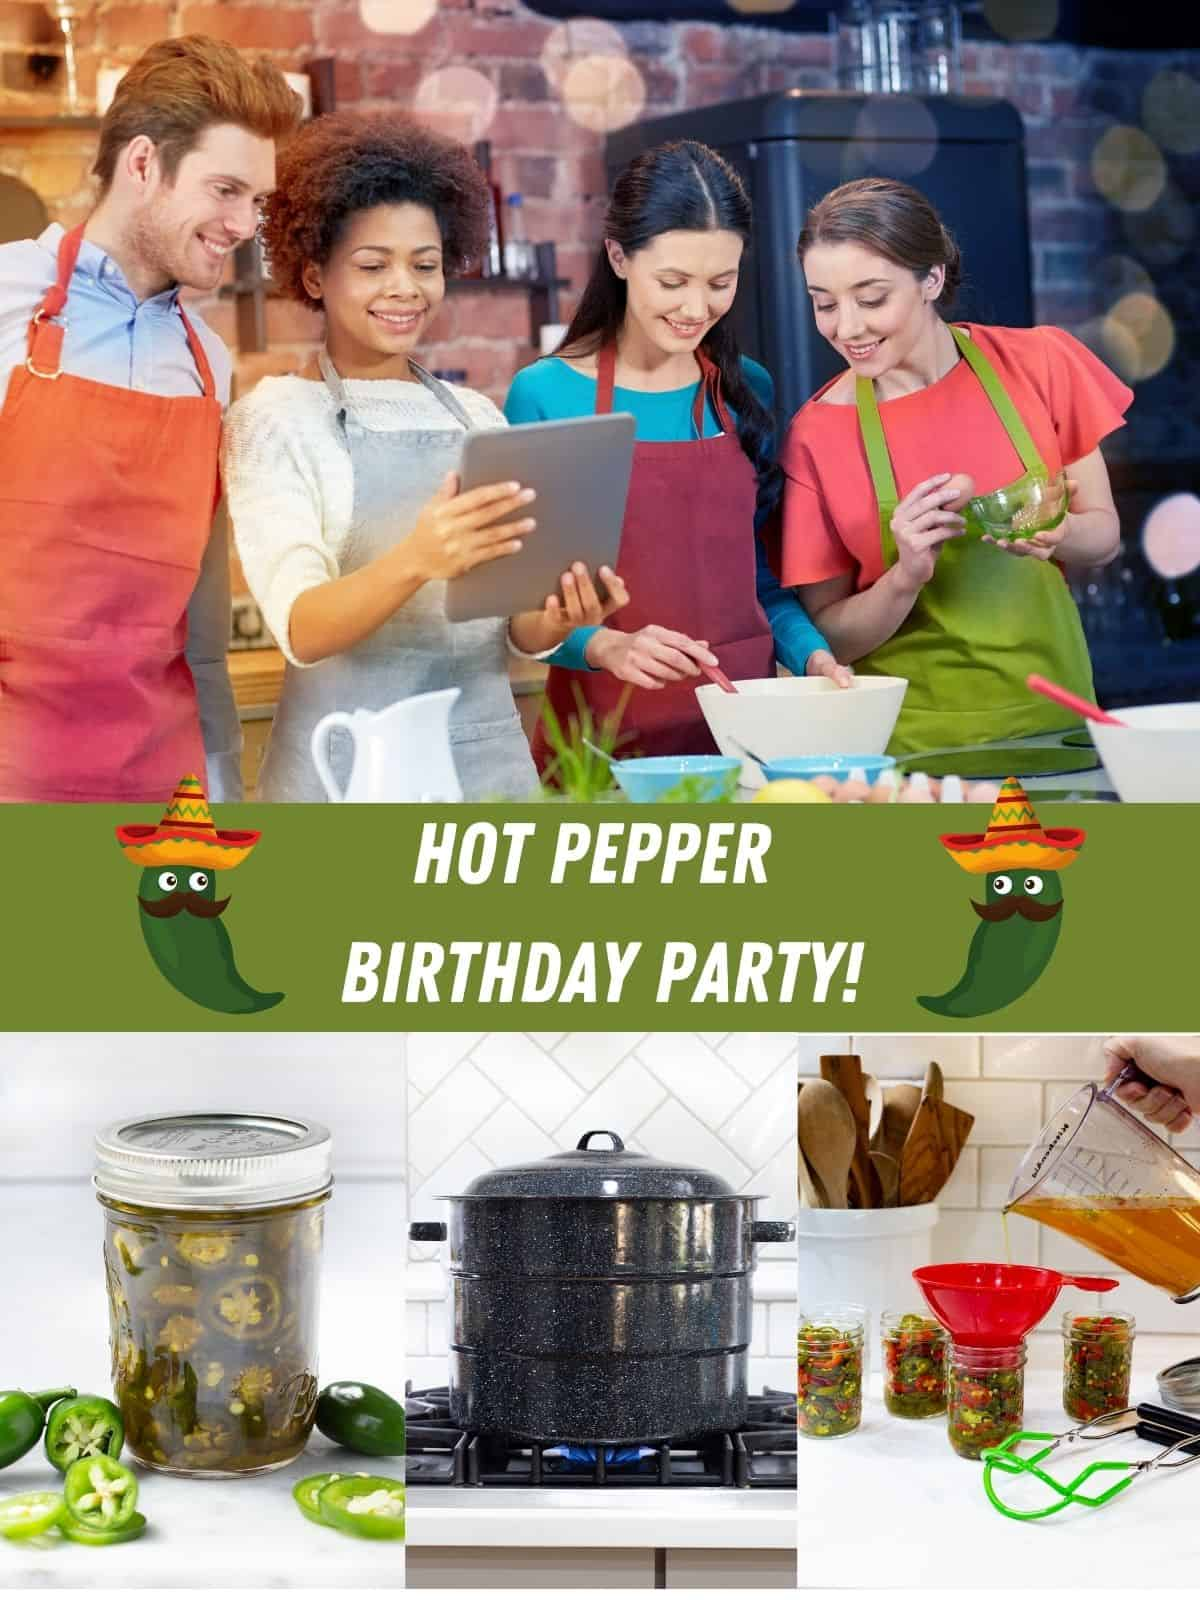 people working in kitchen, jalapeno peppers in jar and canner